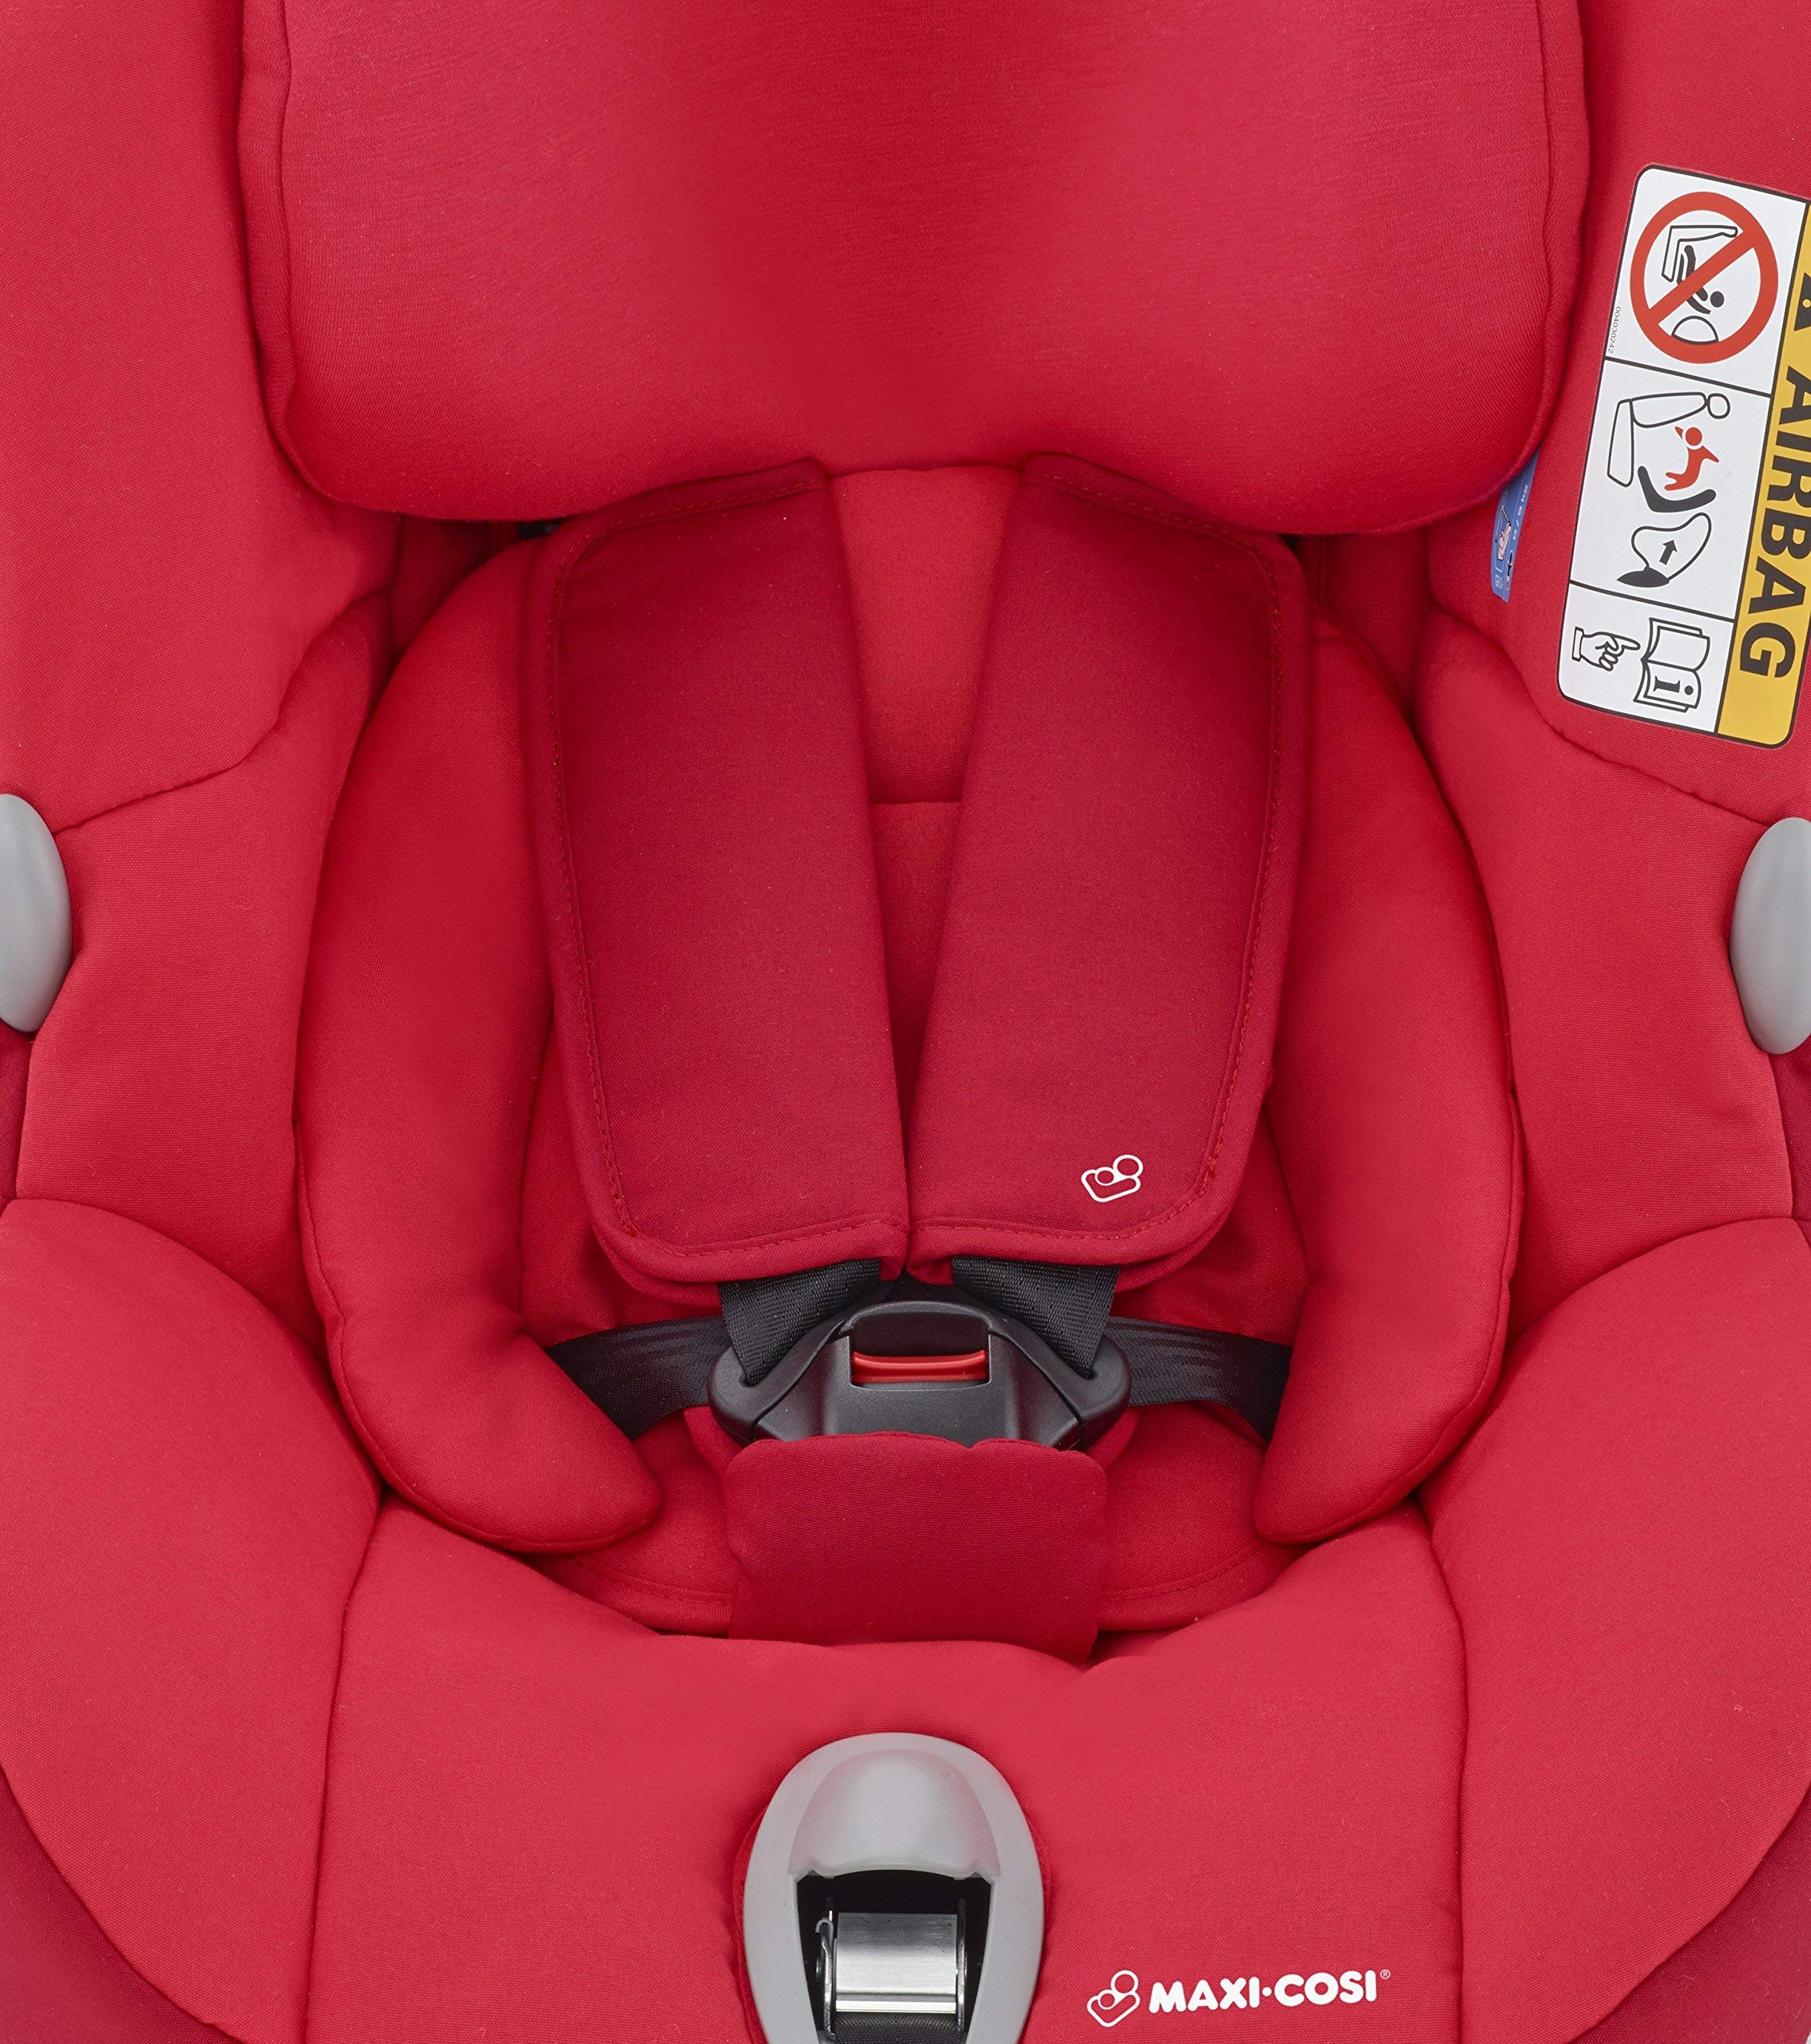 Maxi-Cosi MiloFix ISOFIX Combination Car Seat, Group 0+/1 car seat, Rear and Forward-facing, 0-4 years, 0-18 kg, Vivid Red Maxi-Cosi Rear and forward facing group 0+/1 car seat, suitable from birth to 18 kg (birth to 4 years) i-Size car seat, extended rearward-facing travel up until 18 months Padded seat and angled base provide additional leg room in rear-facing position 3